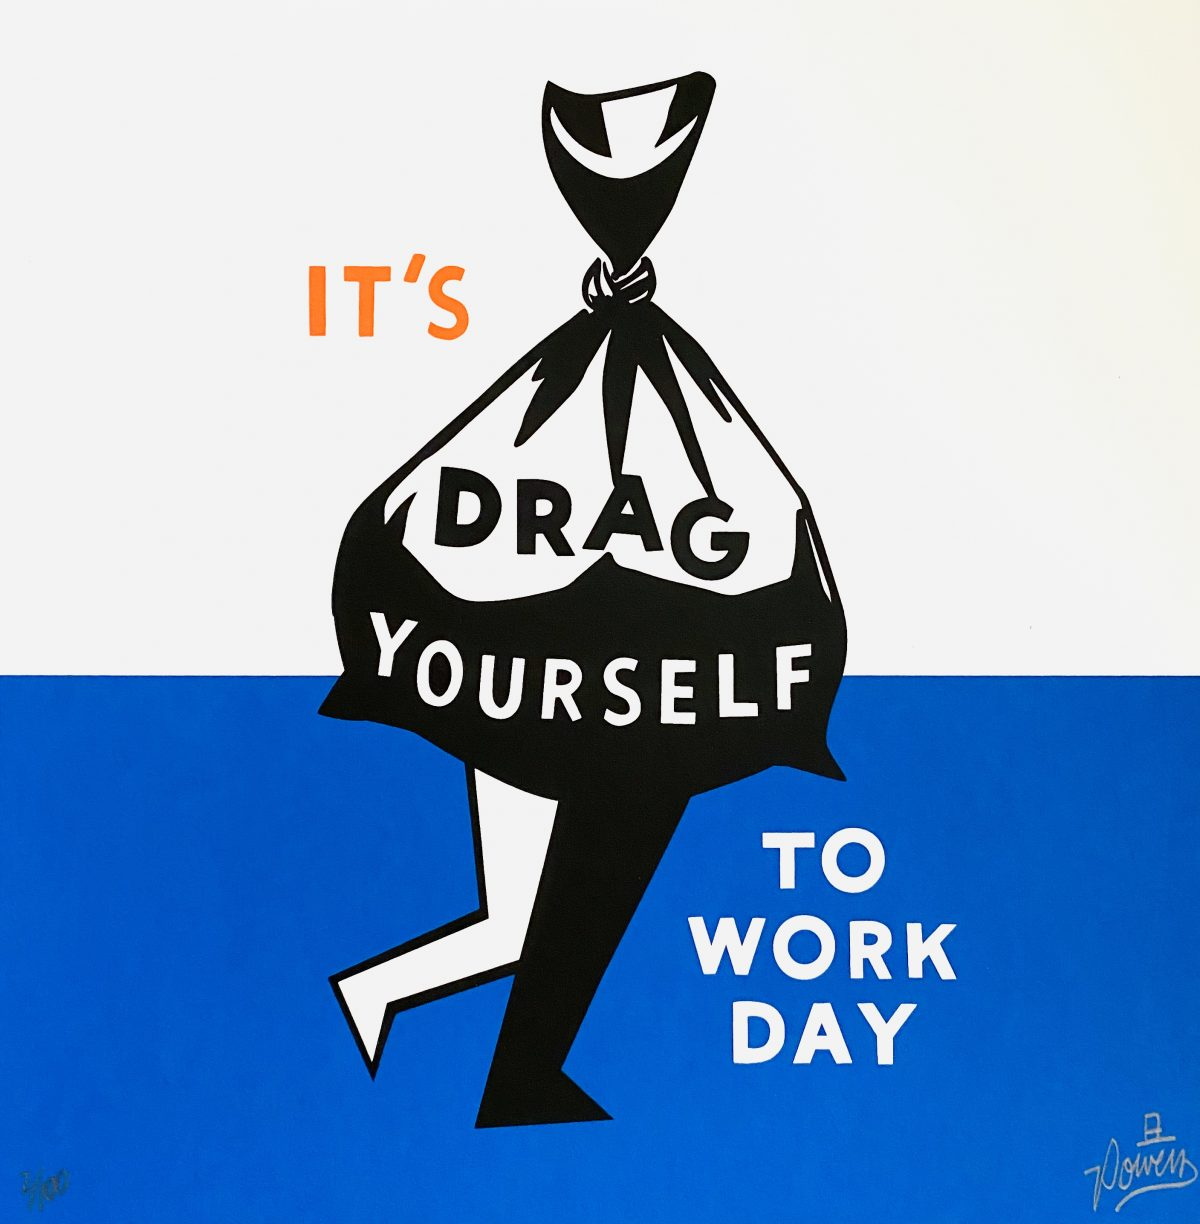 Stephen Powers - I'ts Drag Yourself To Work Day